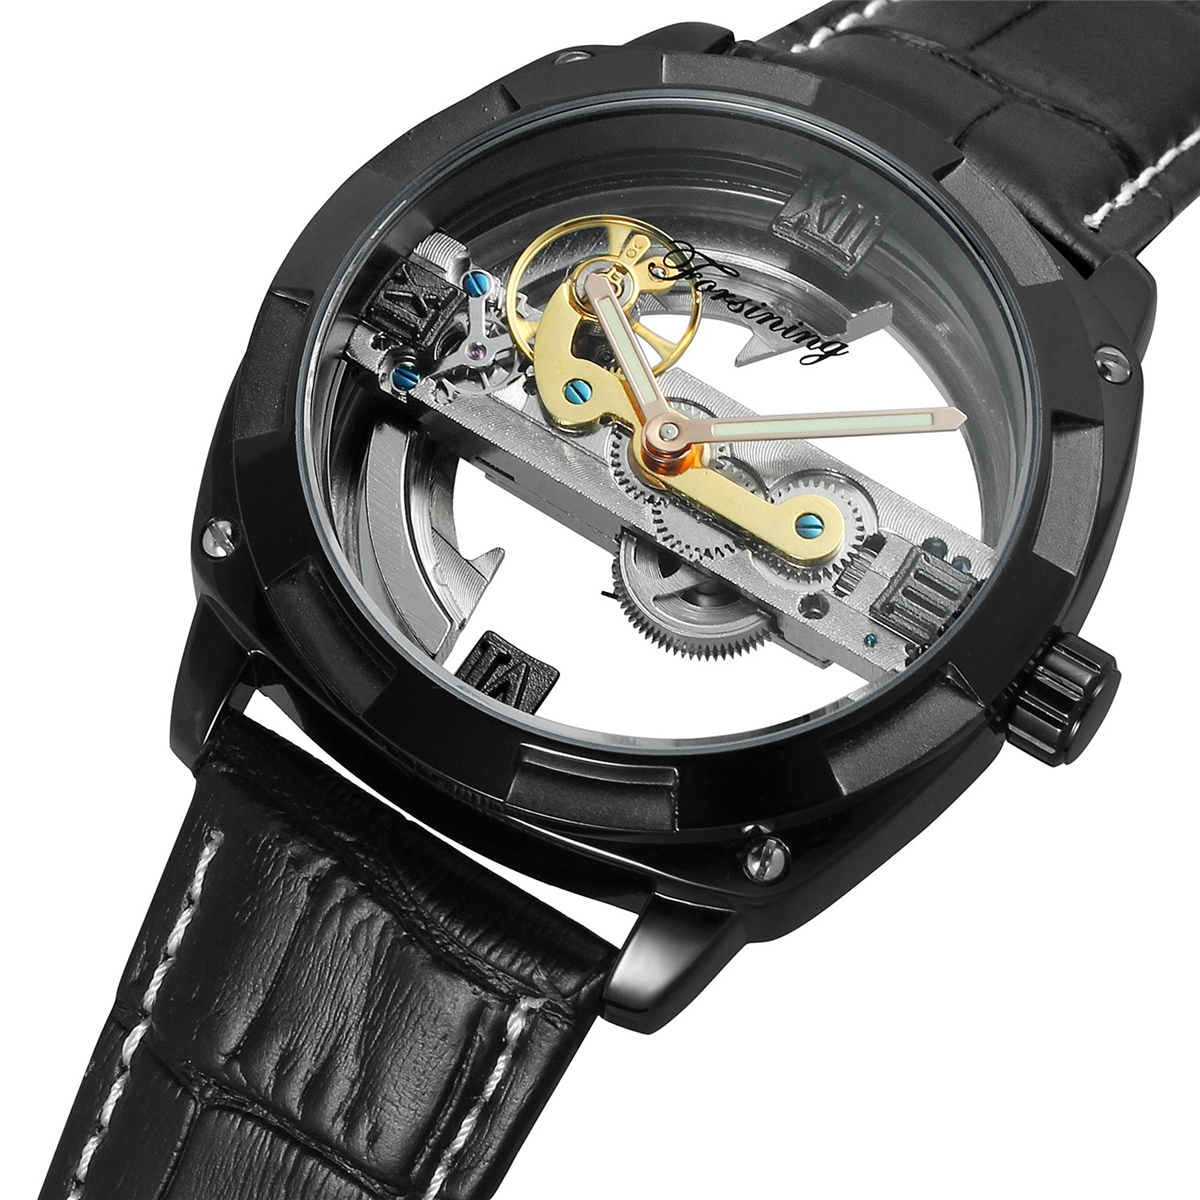 Forsining Luxury Brand Transparent Men Mechanical Watch Gold Skeleton Automatic Watches Mens Wristwatch Black Leather Band Clock luxury brand tiedan transparent men mechanical watch gold tourbillon skeleton automatic watches mens wristwatch leather clock